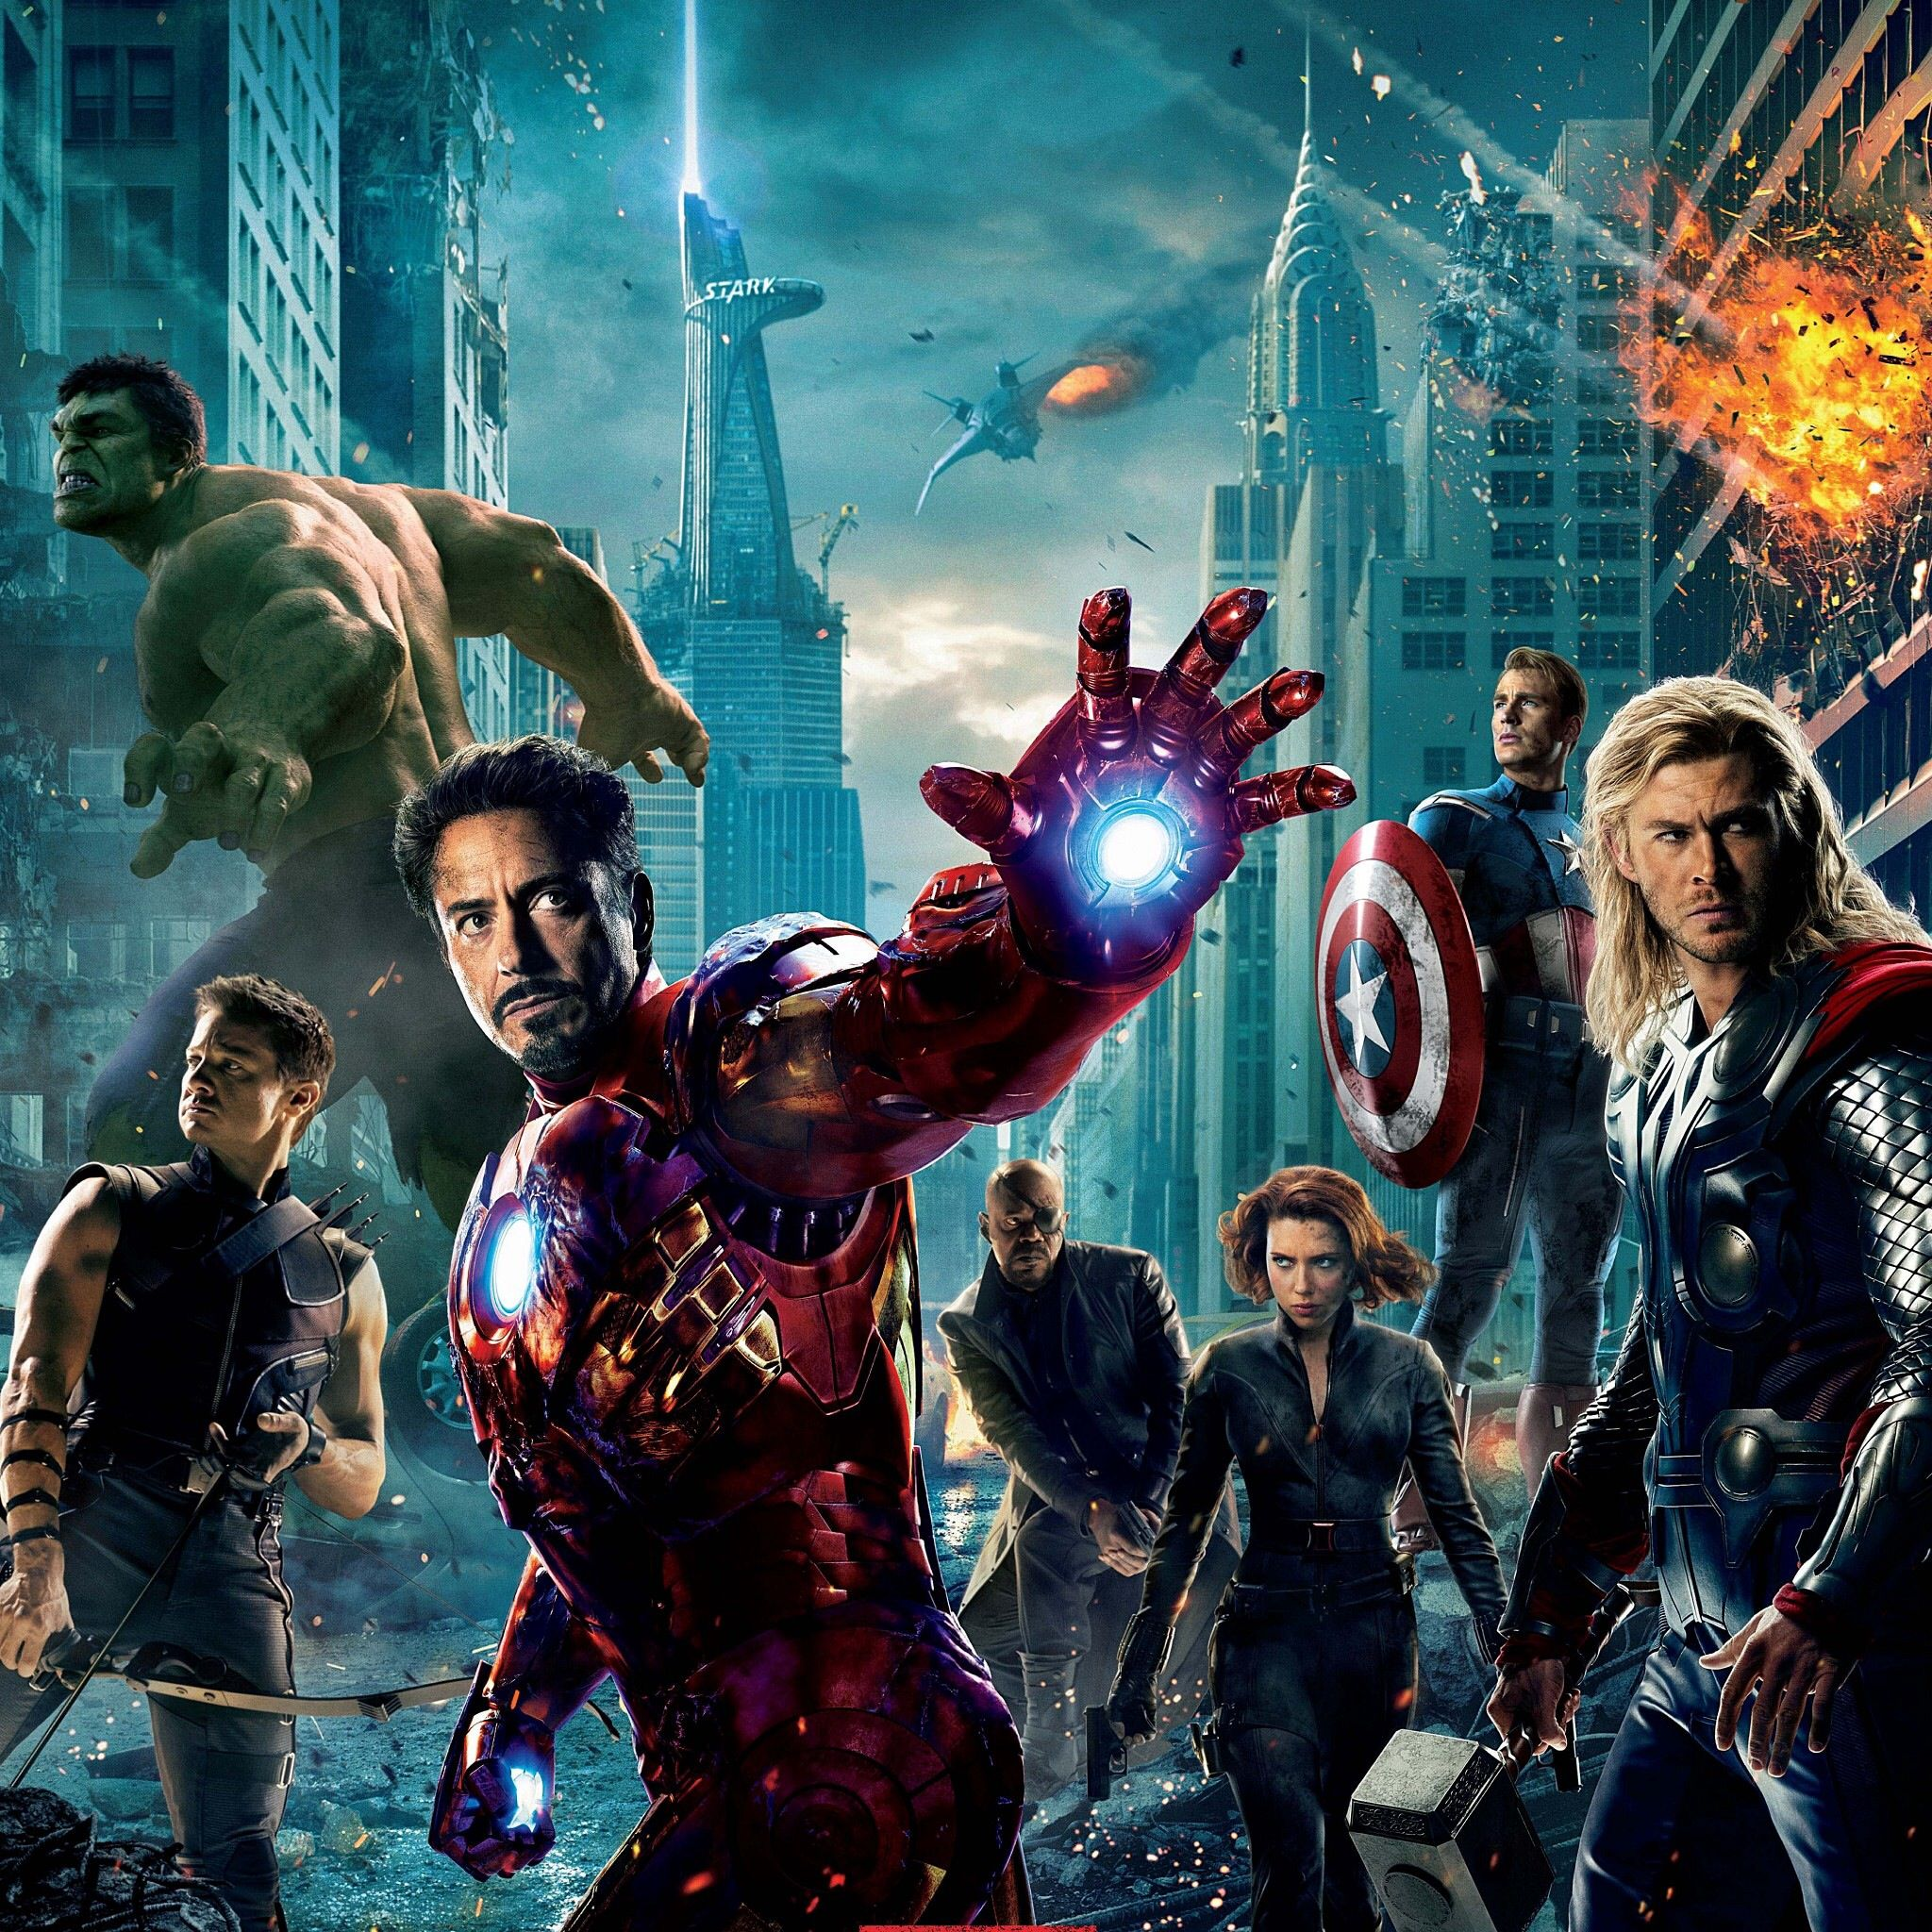 The Avengers Avengers movies, Avengers, Marvel movies